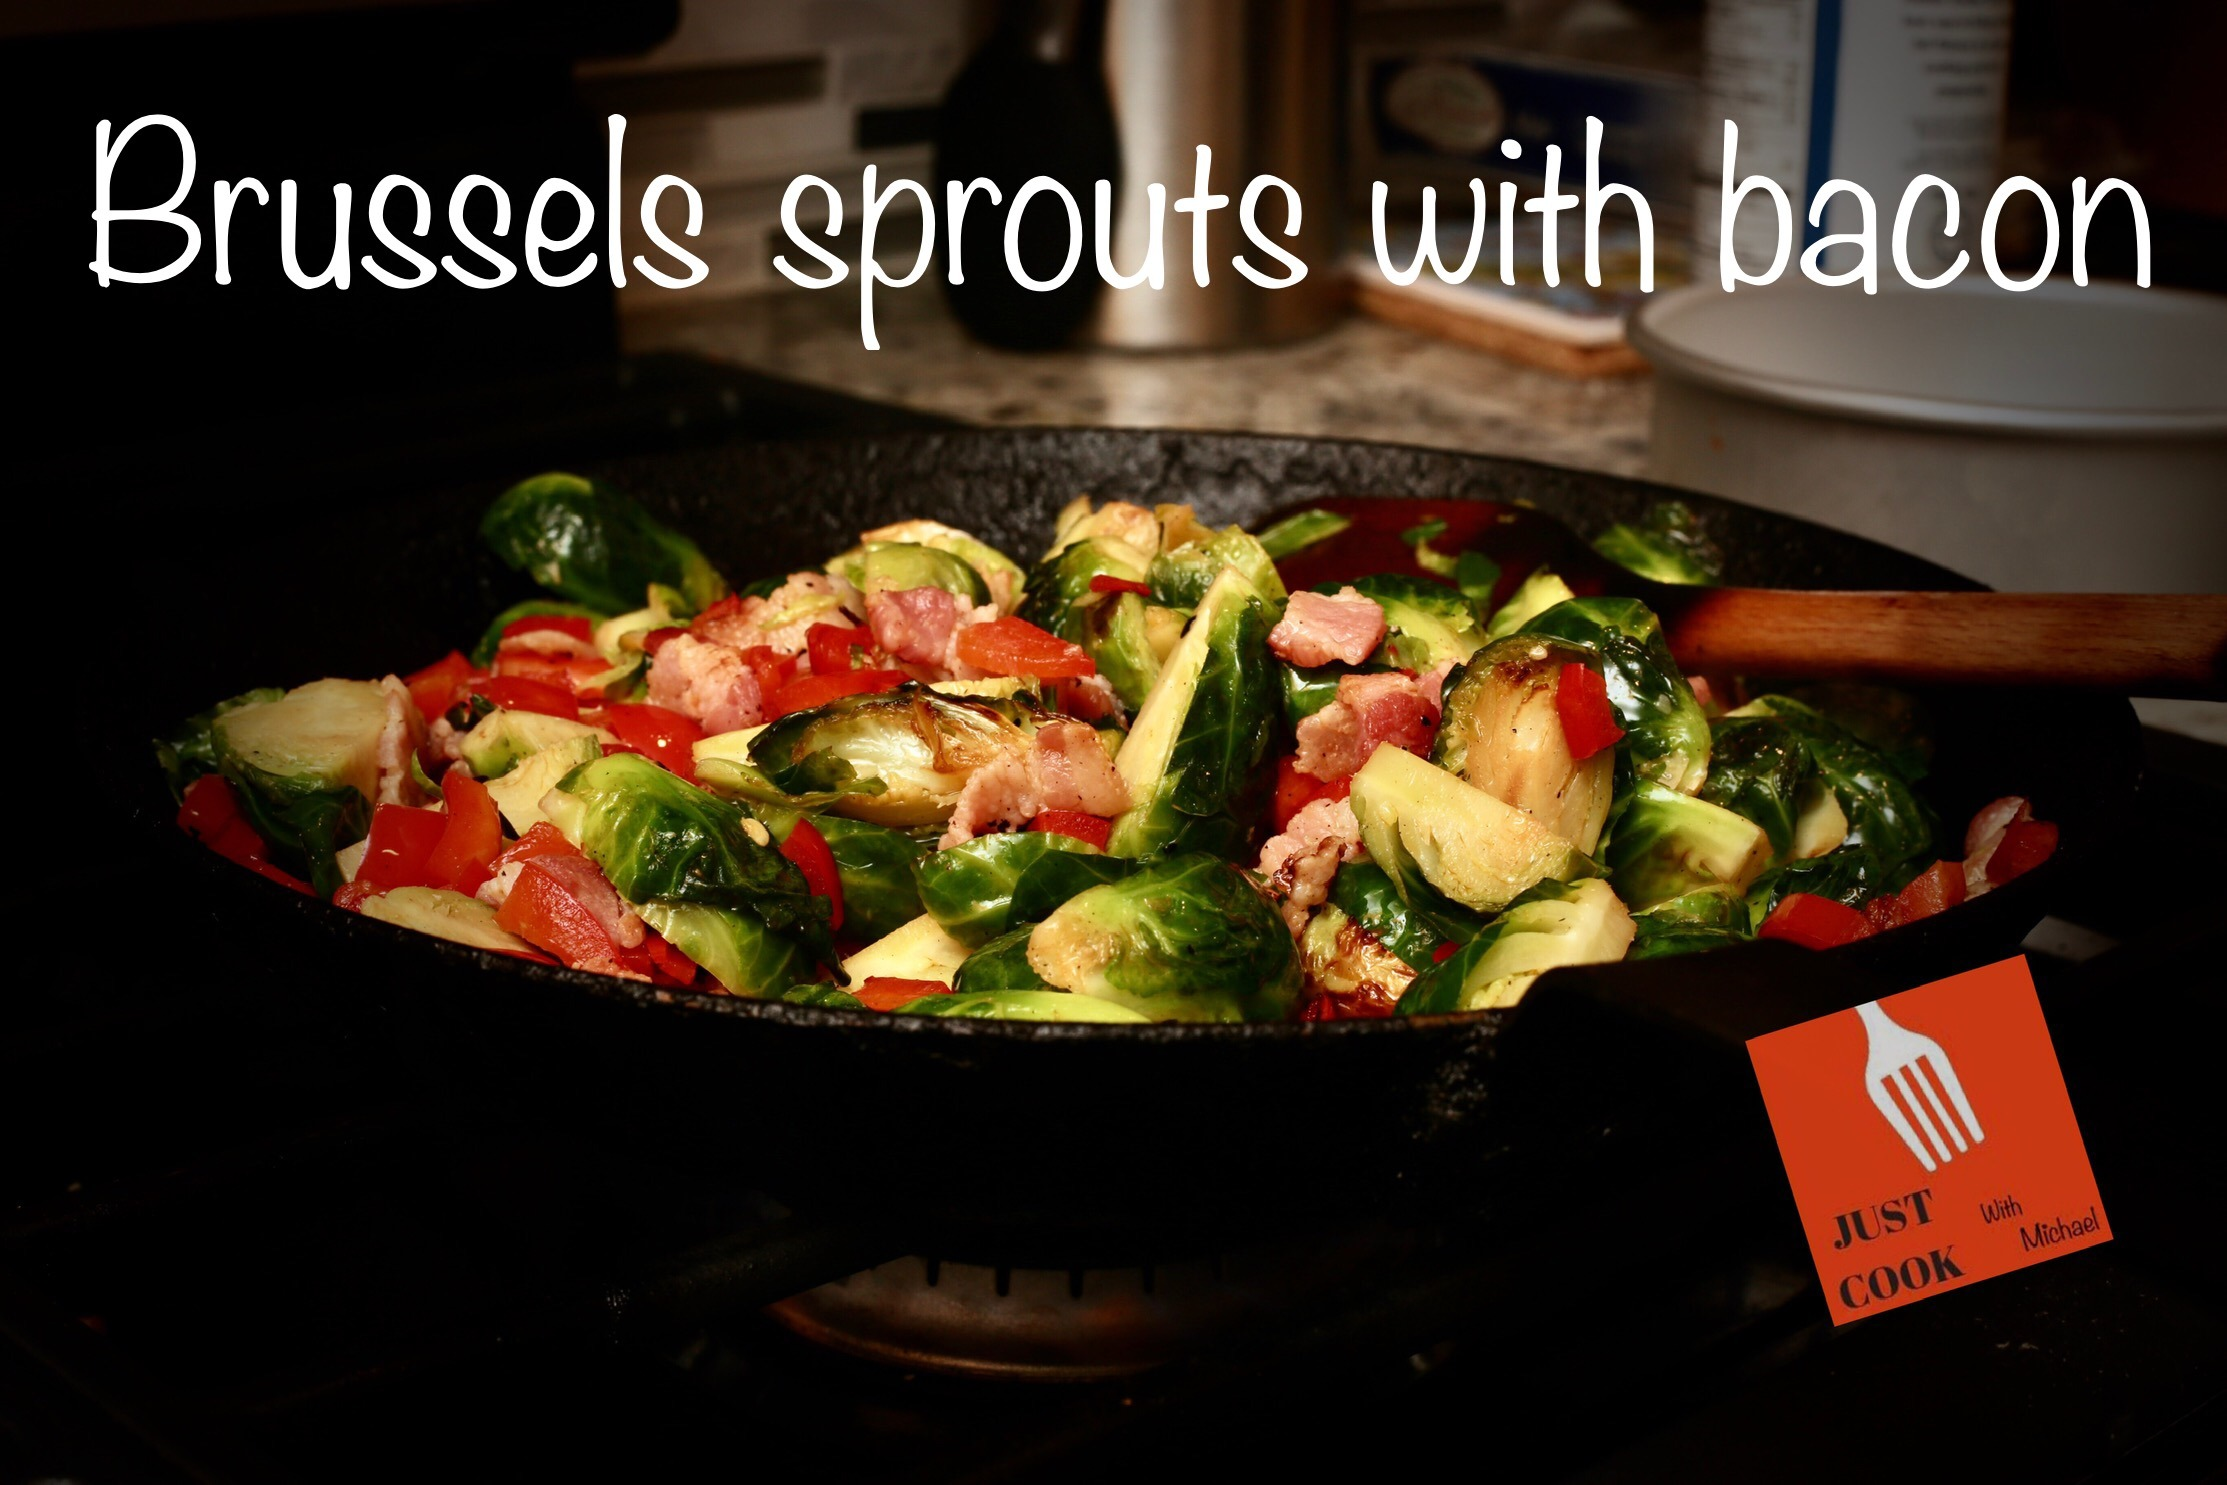 Crispy pan sauteed brussels sprouts with bacon